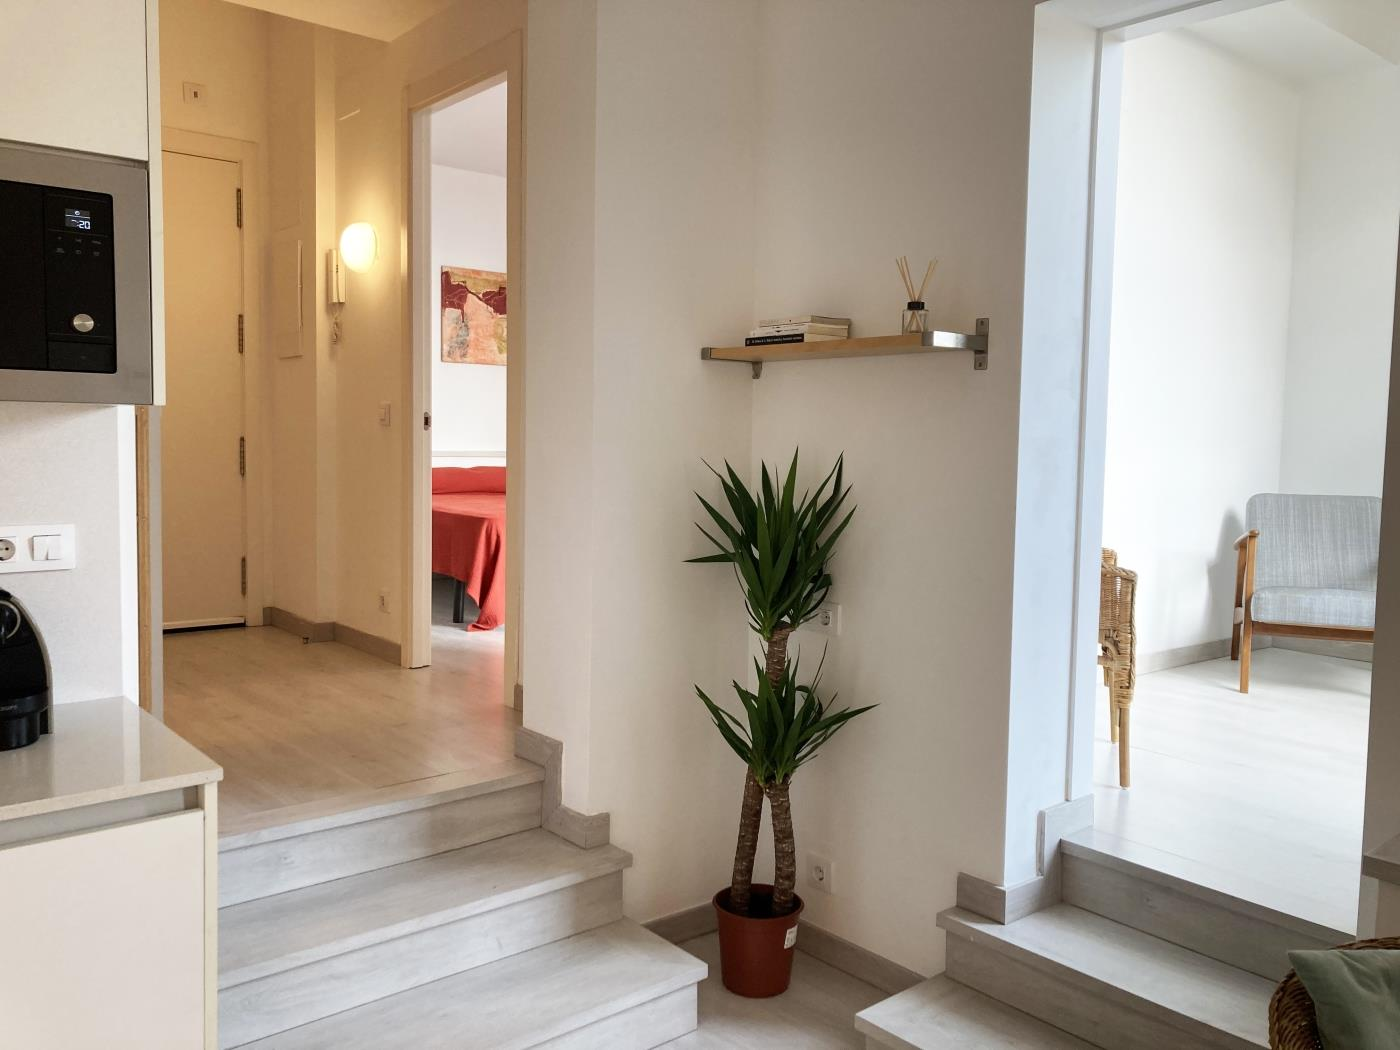 Lovely apartment for long term rentals in the city centre near Plaza Catalunya - My Space Barcelona Apartments